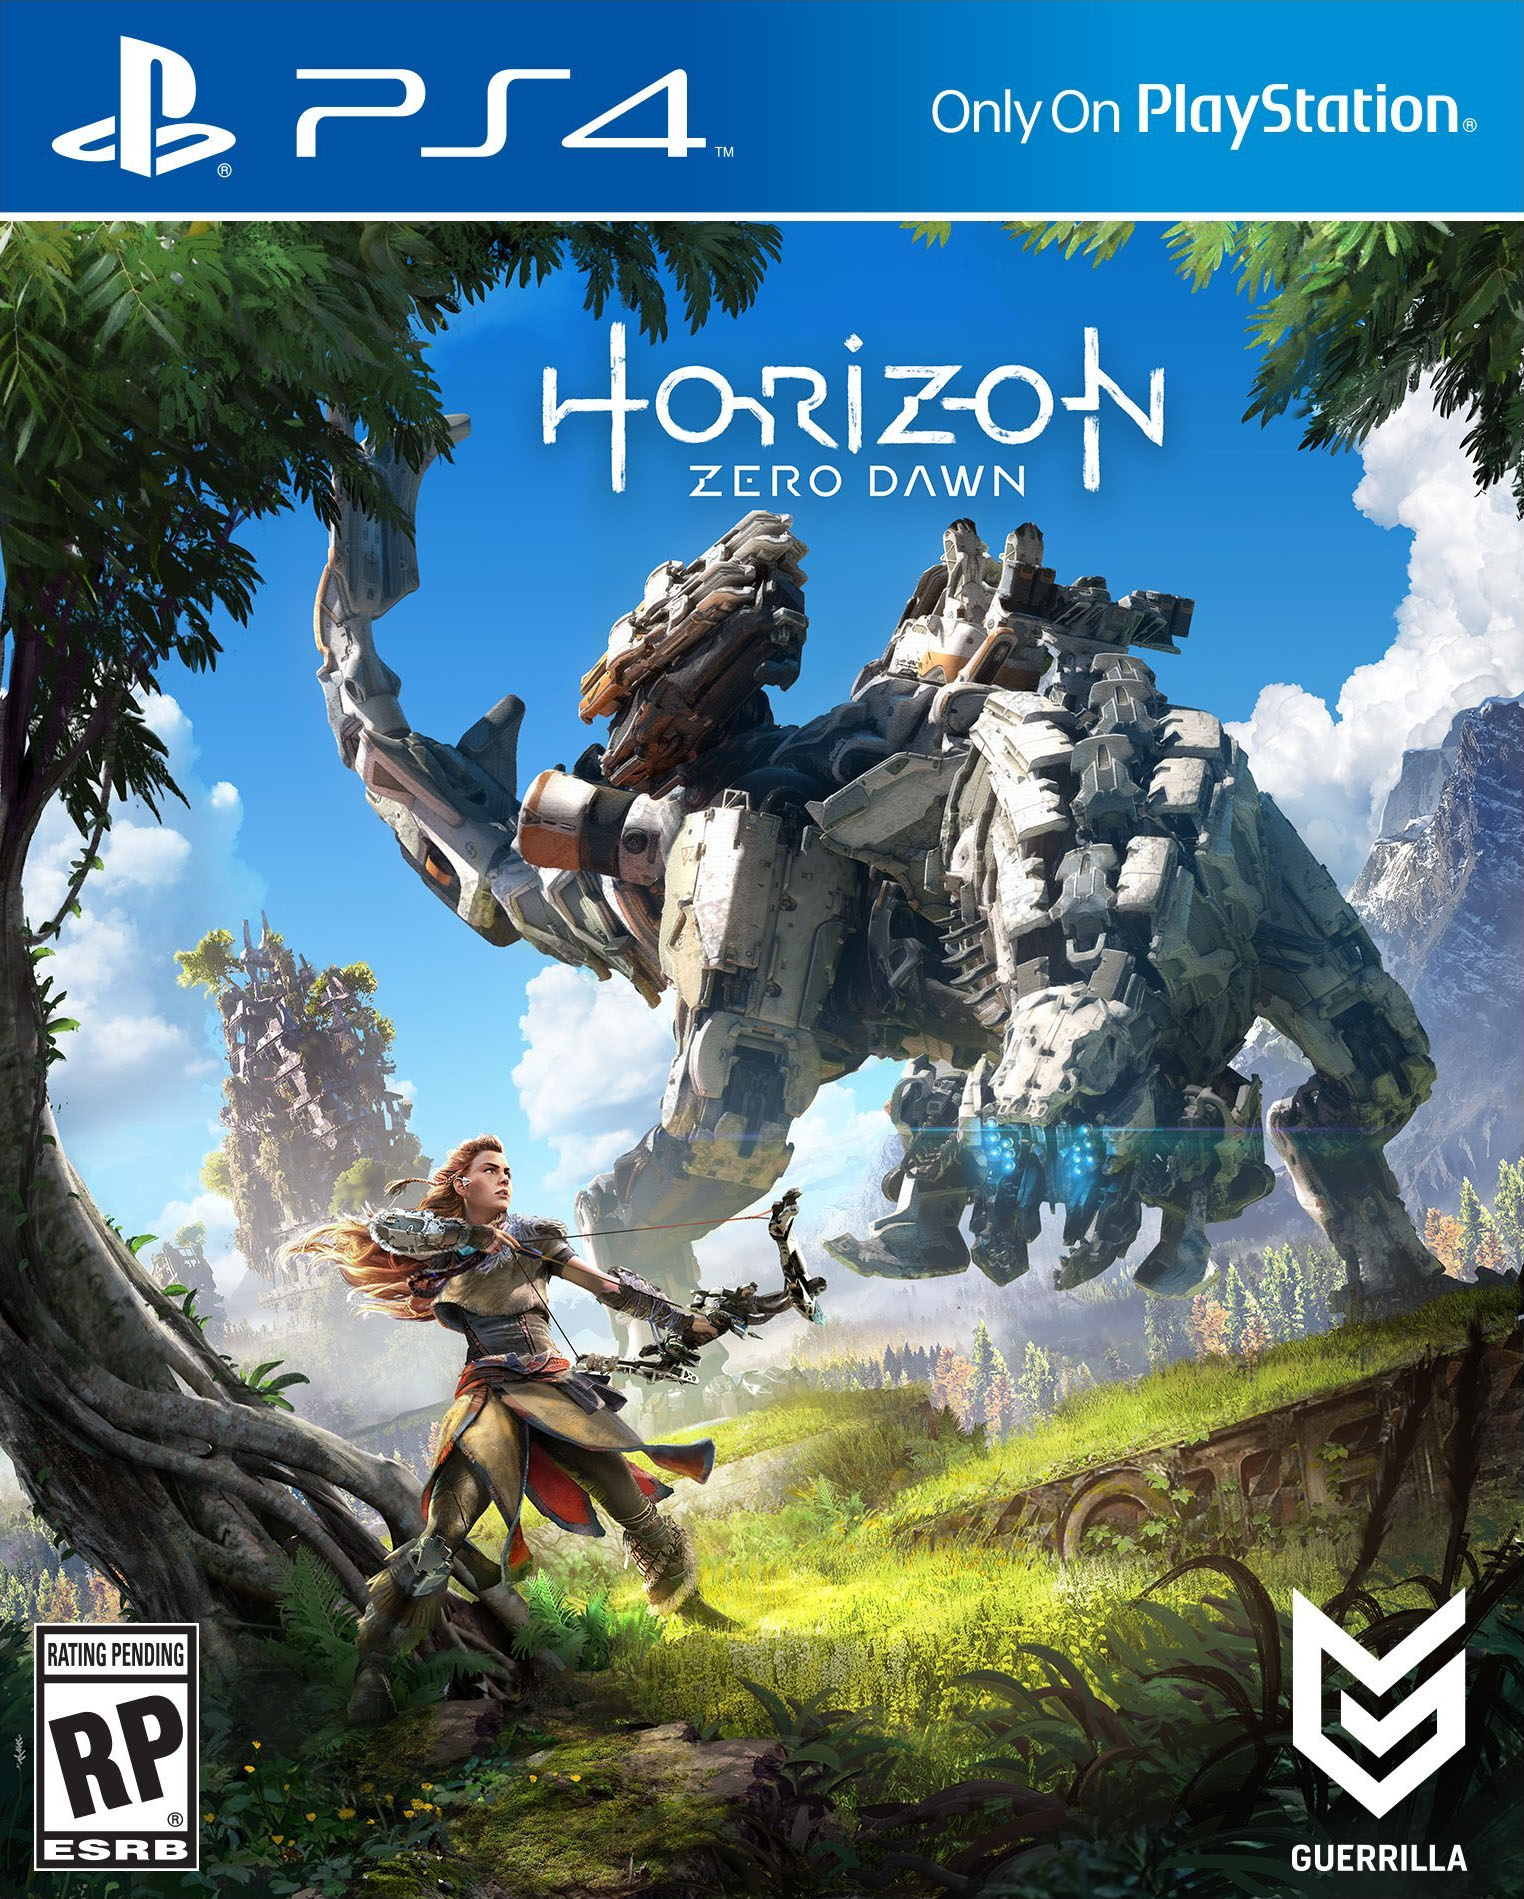 http://vignette1.wikia.nocookie.net/horizonzerodawn/images/d/d4/Horizon-zero-dawn-box-art.jpg/revision/latest?cb=20160616210605